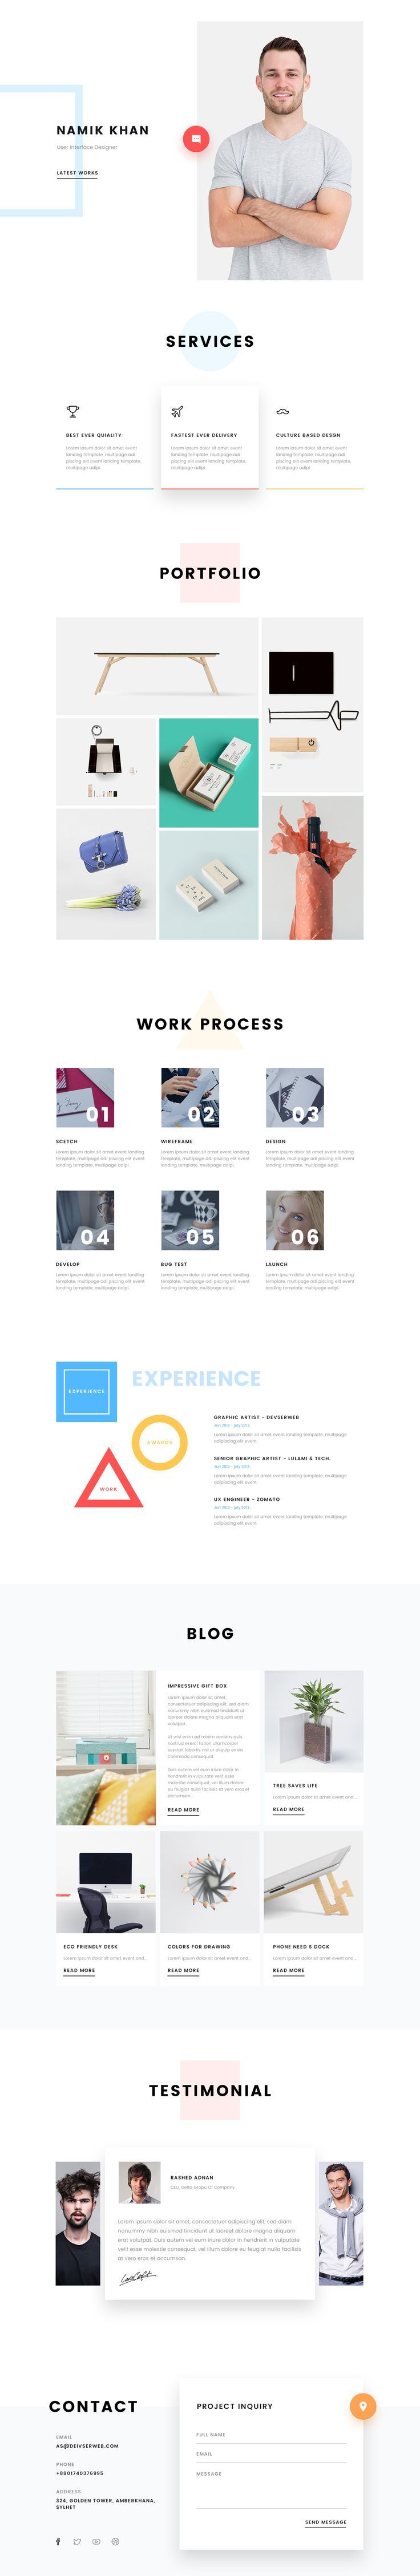 Personal Resume Personal Cvresumeali Sayed  As Seen On Dribbble  Web .